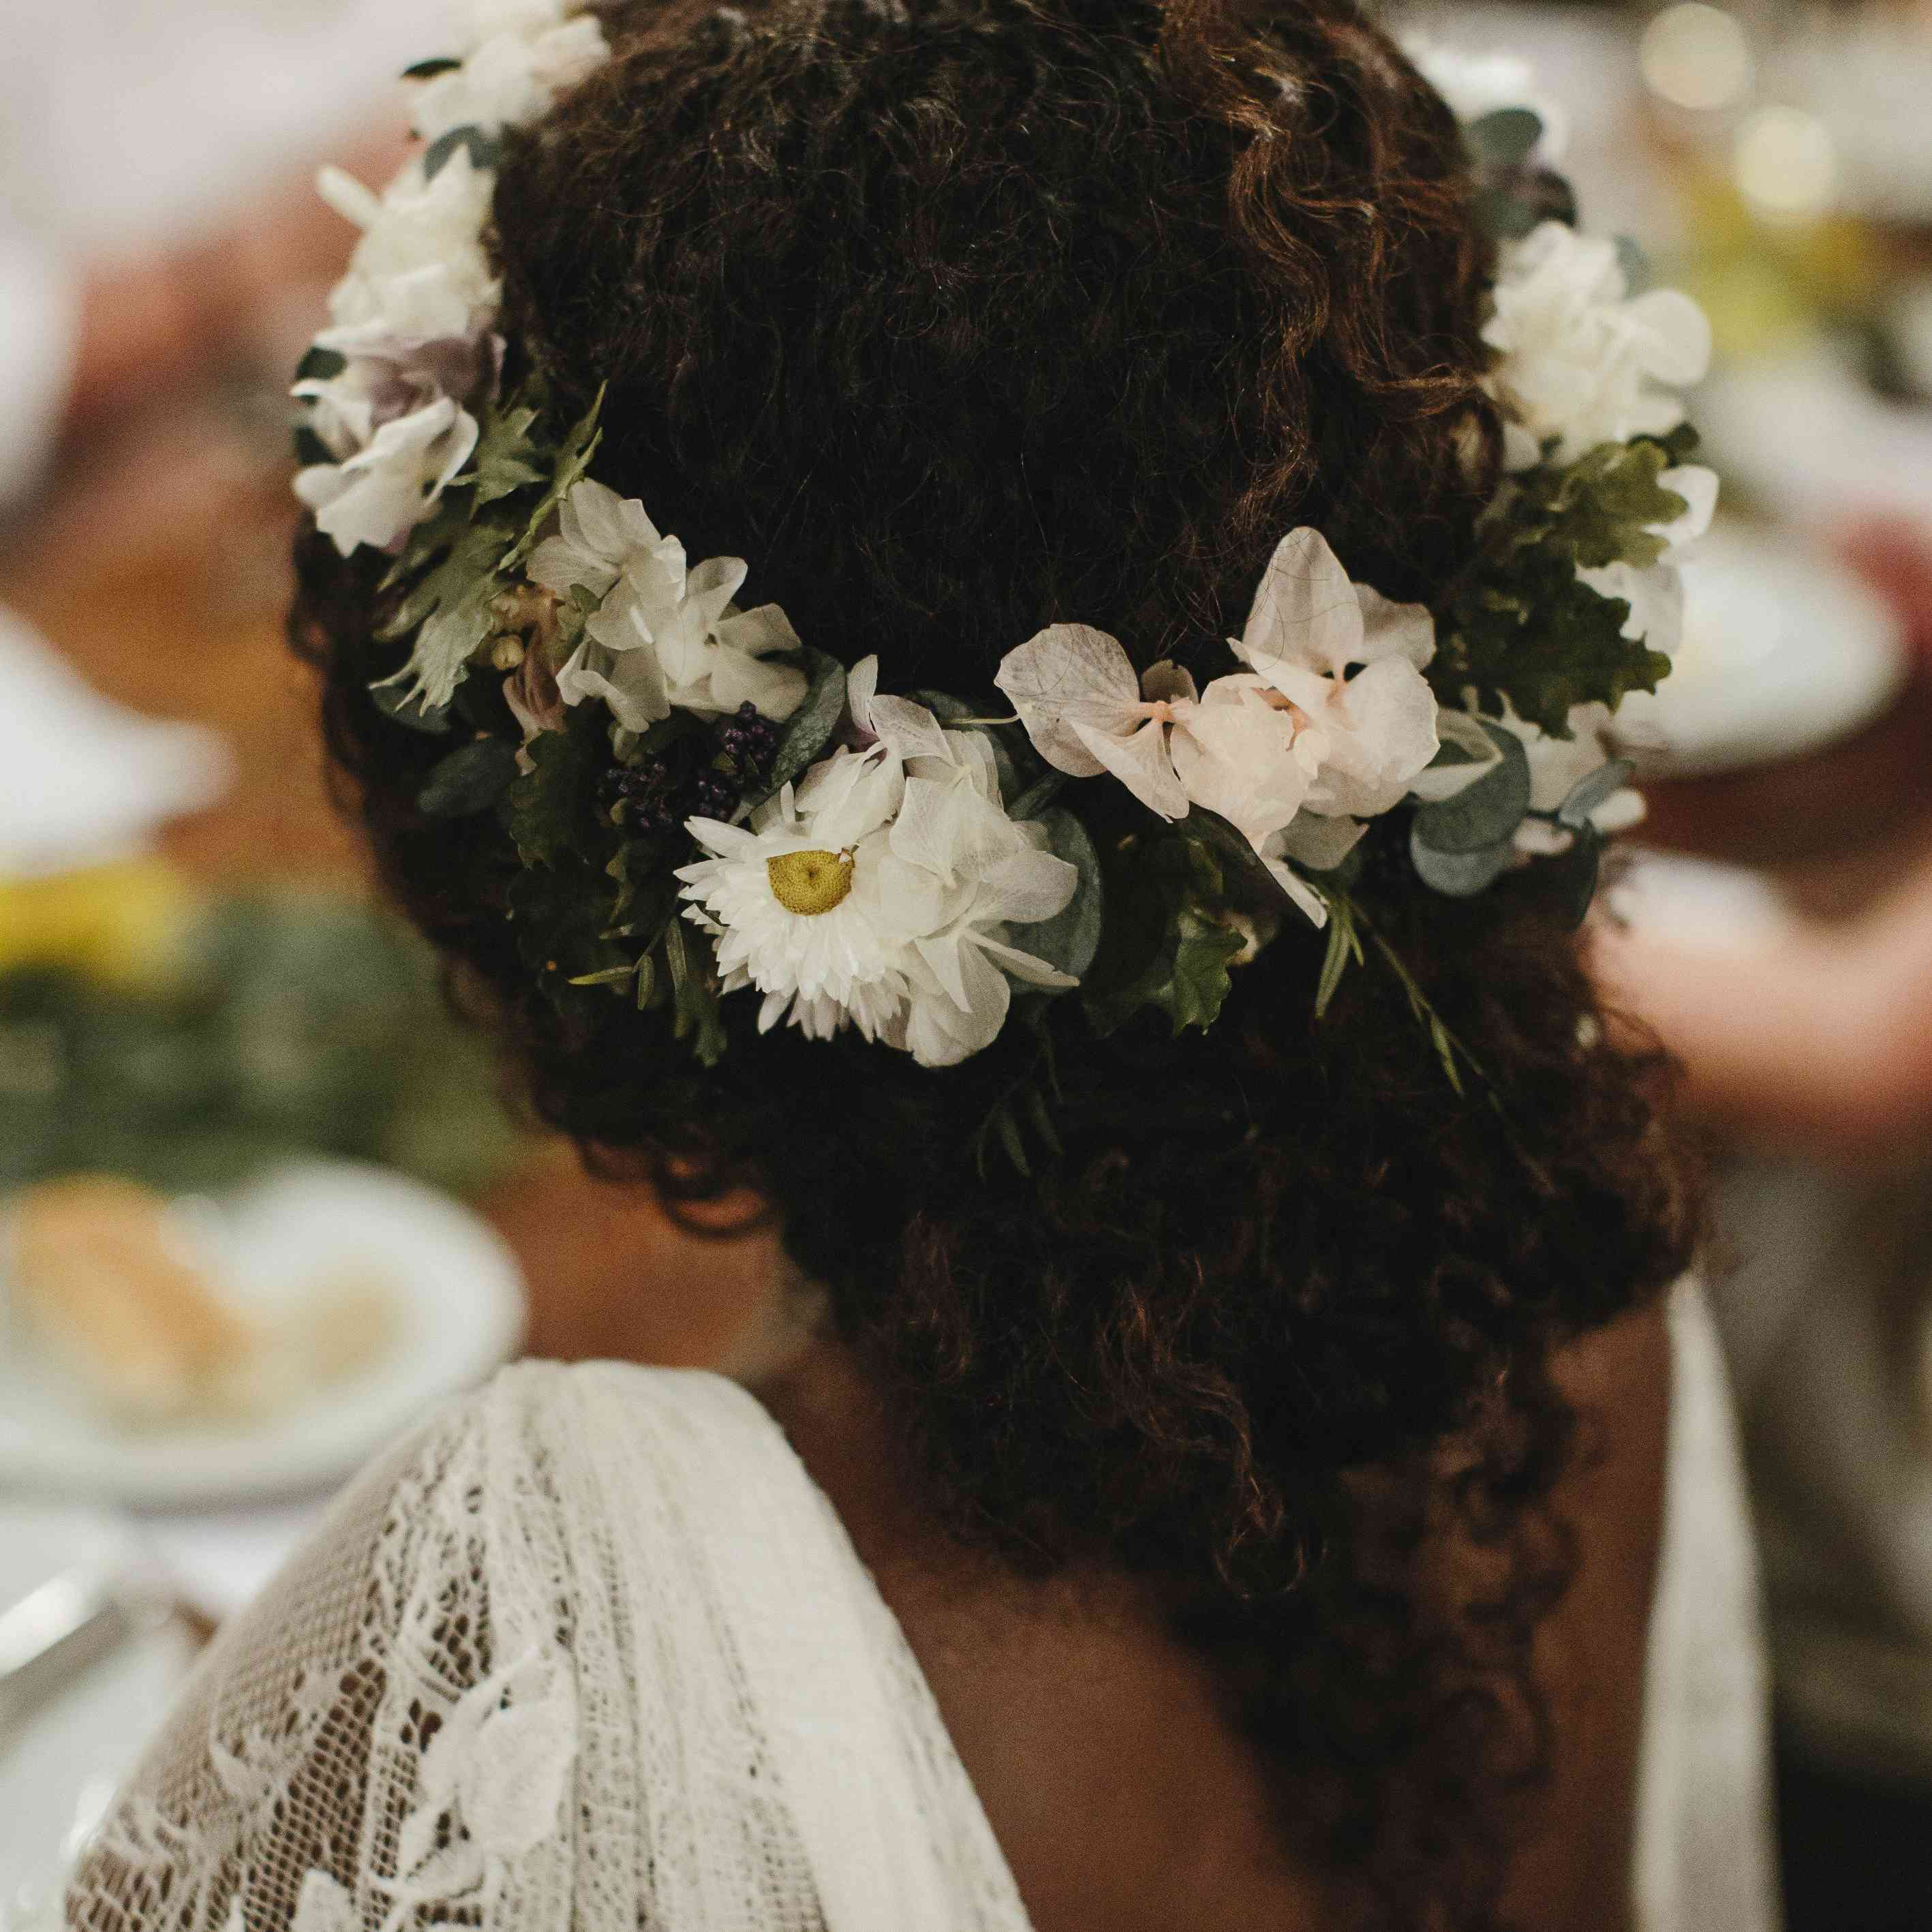 Messy Bun with White Flower Crown